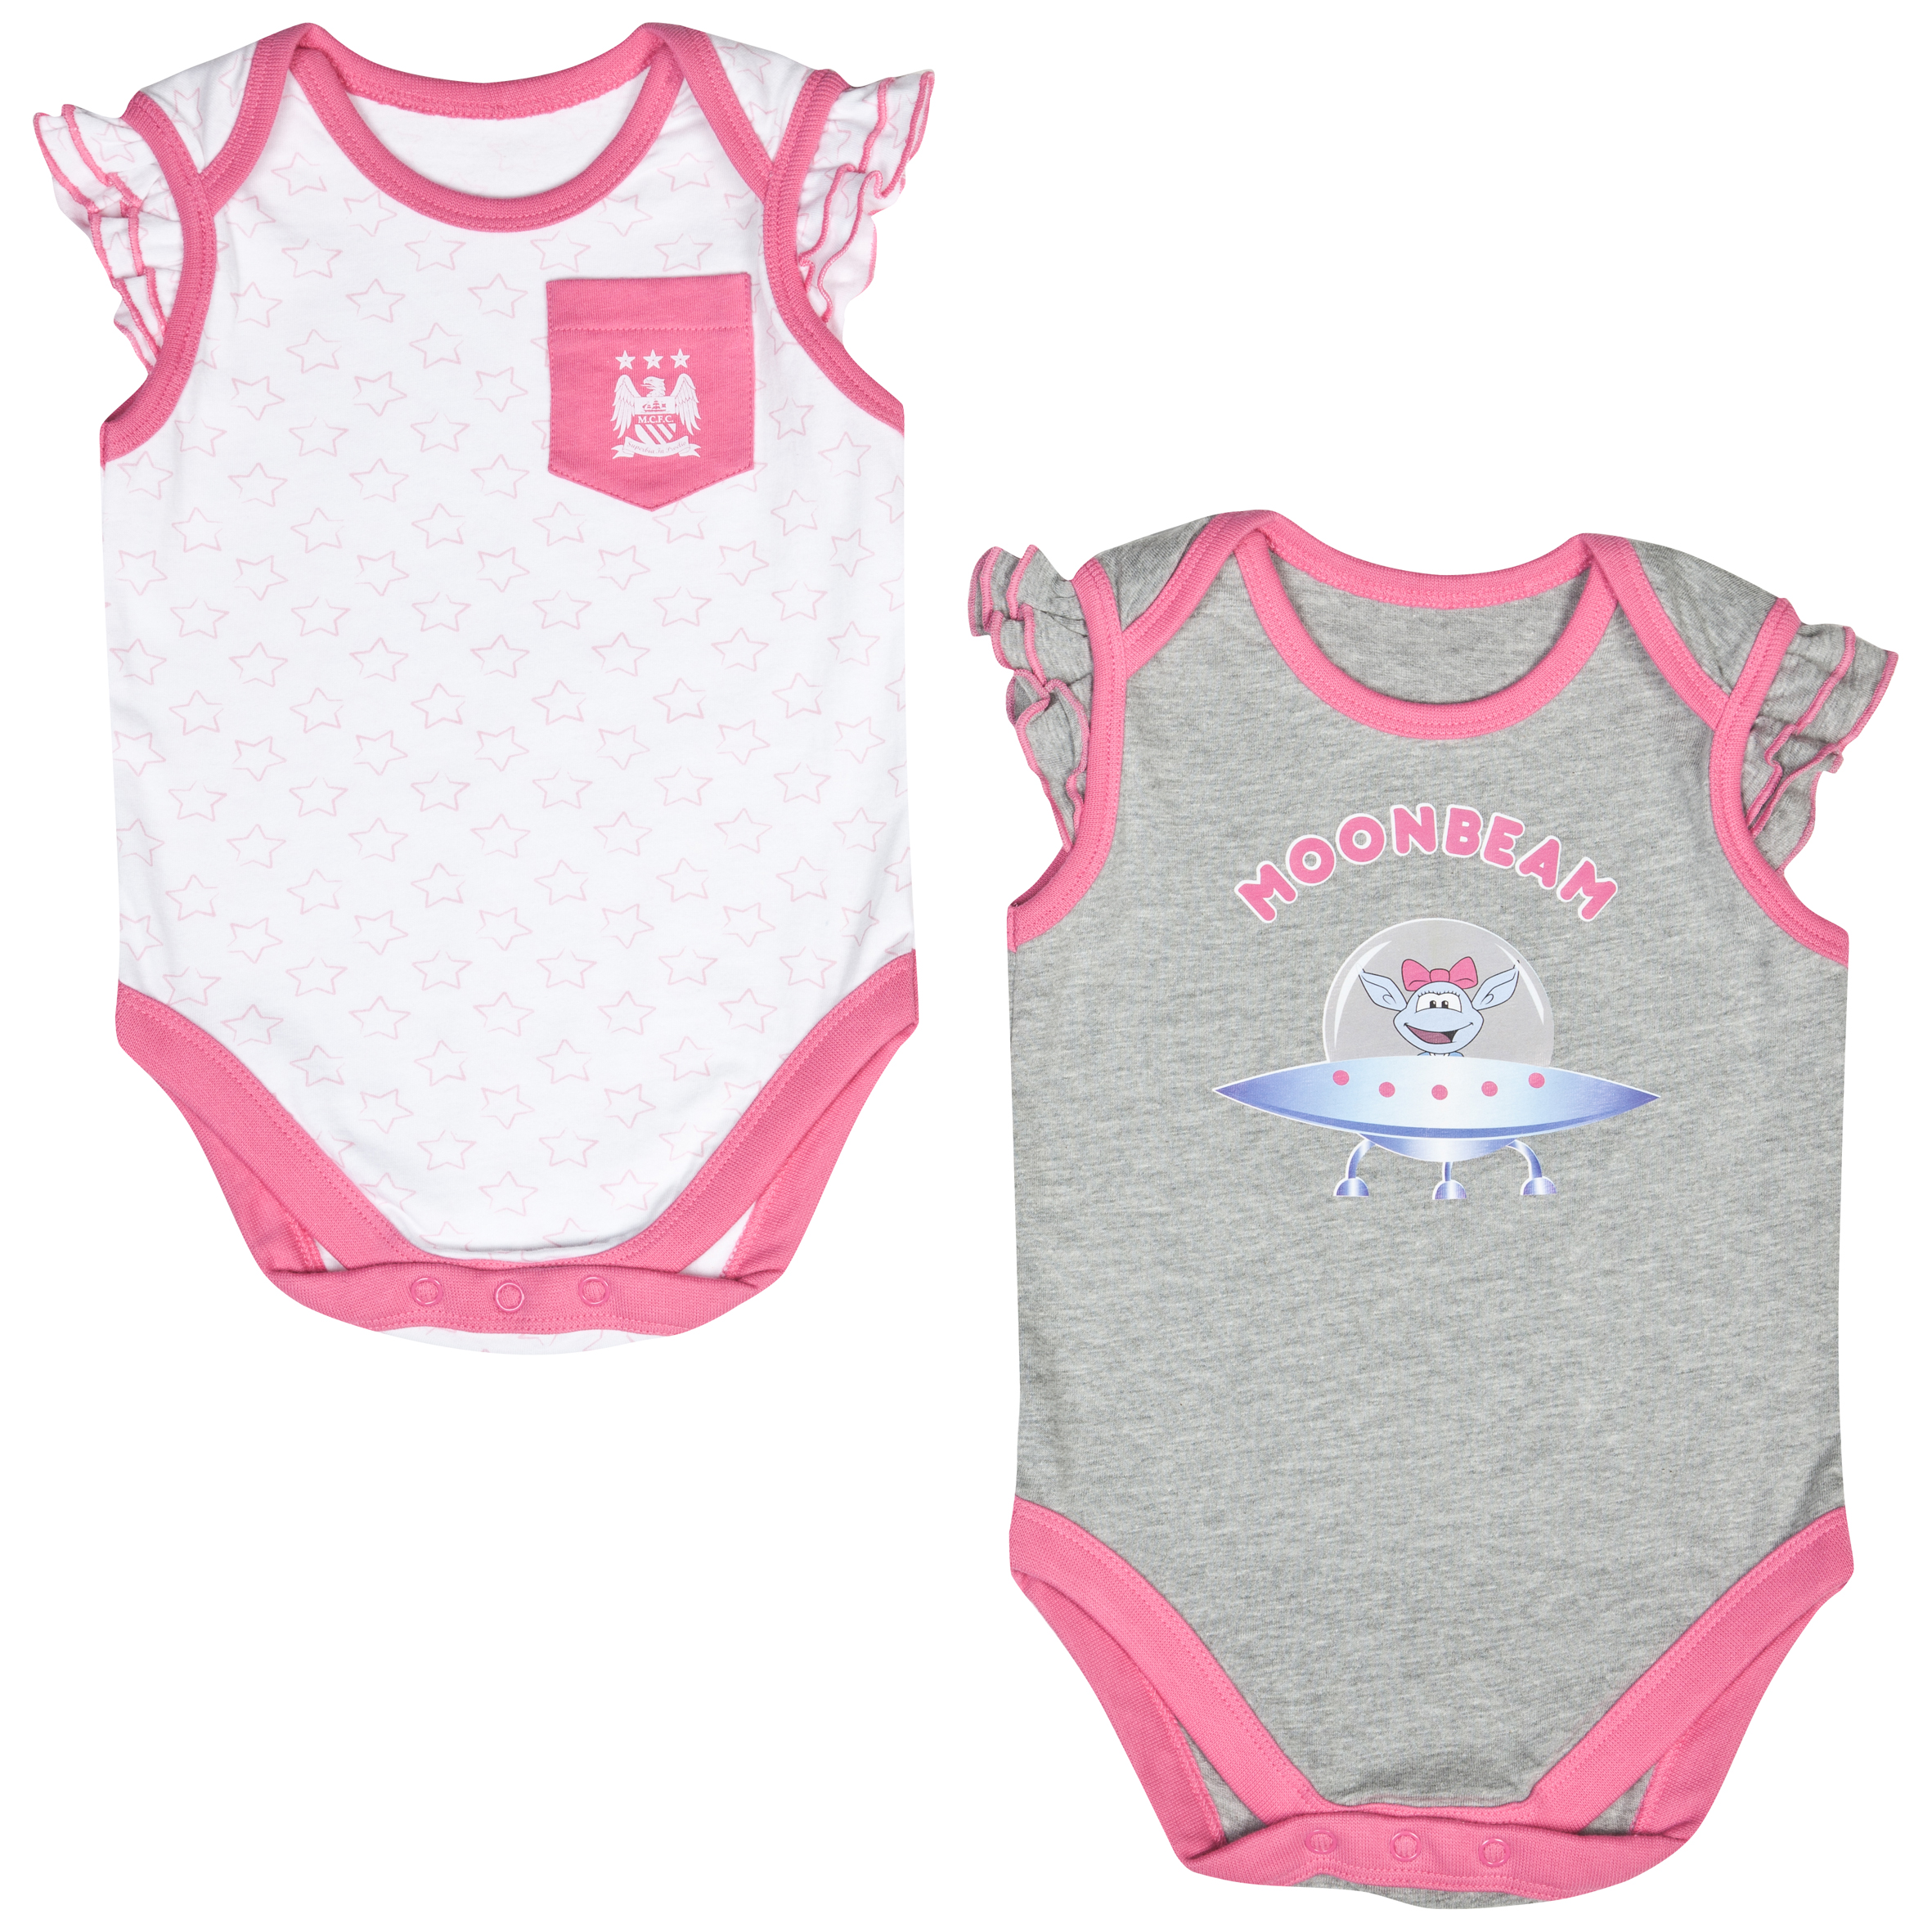 Manchester City Moonbeam Bodysuits - Pink/White - Baby